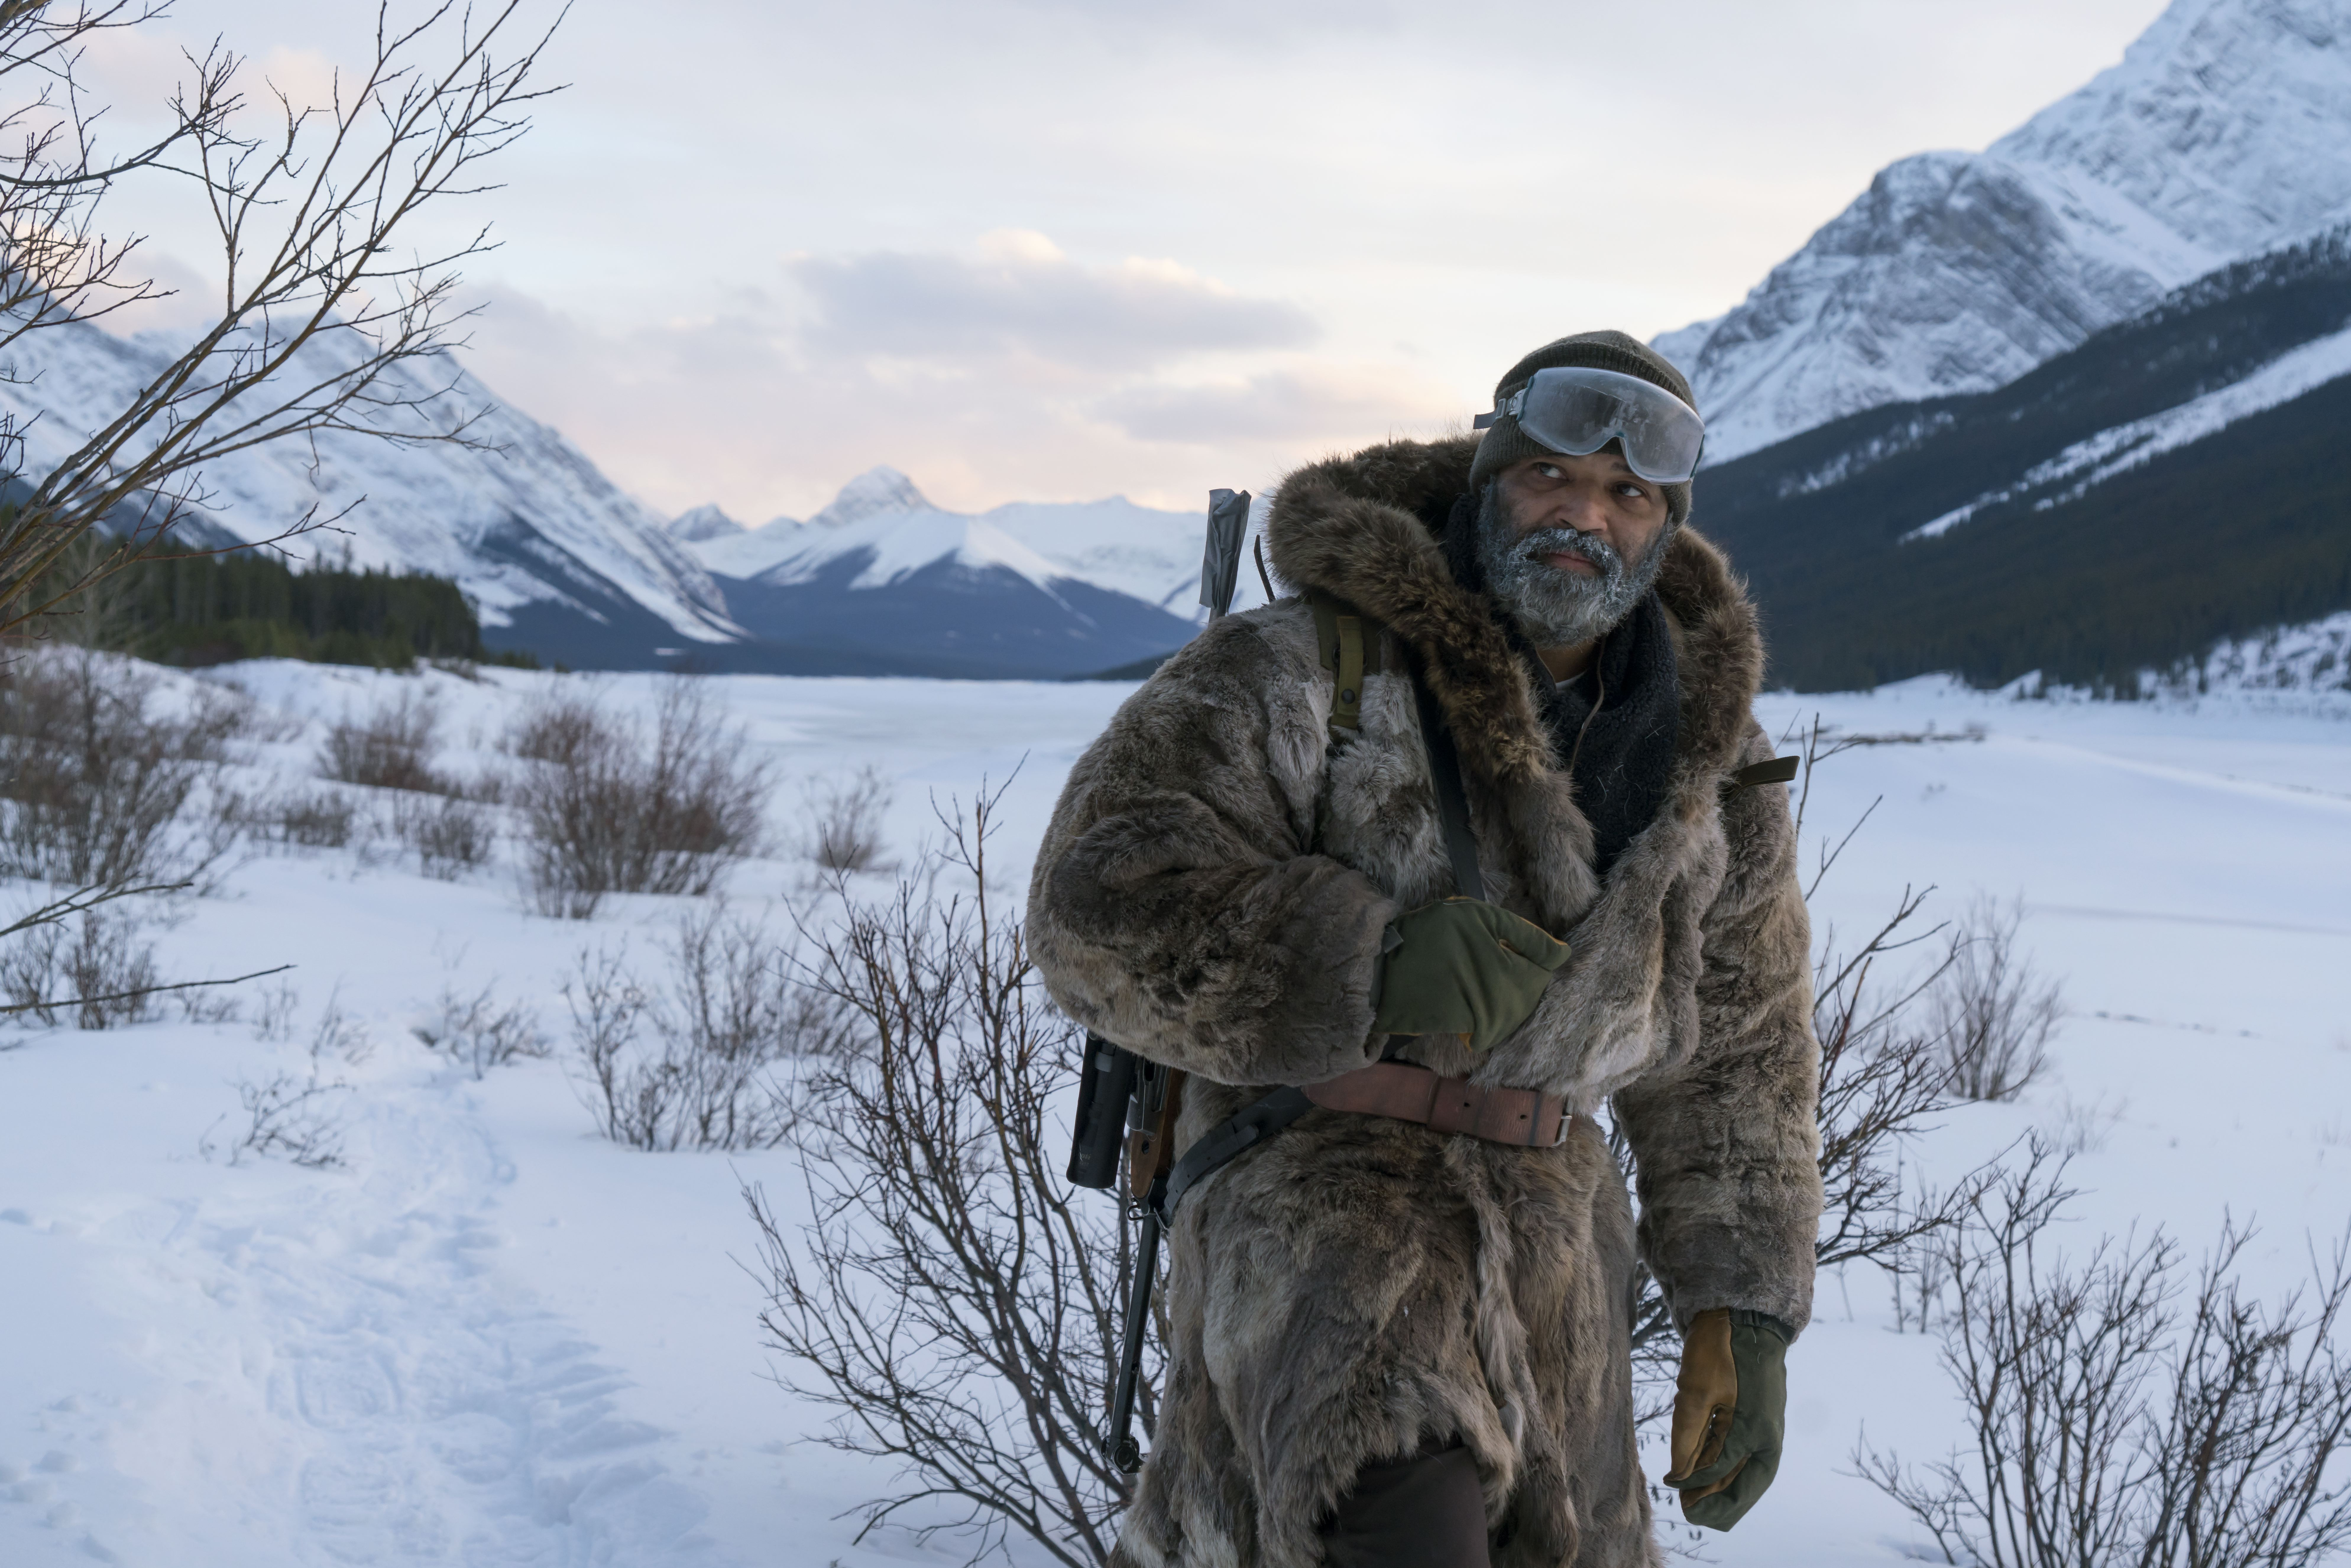 Hold the Dark review: A chillingly complex Netflix thriller